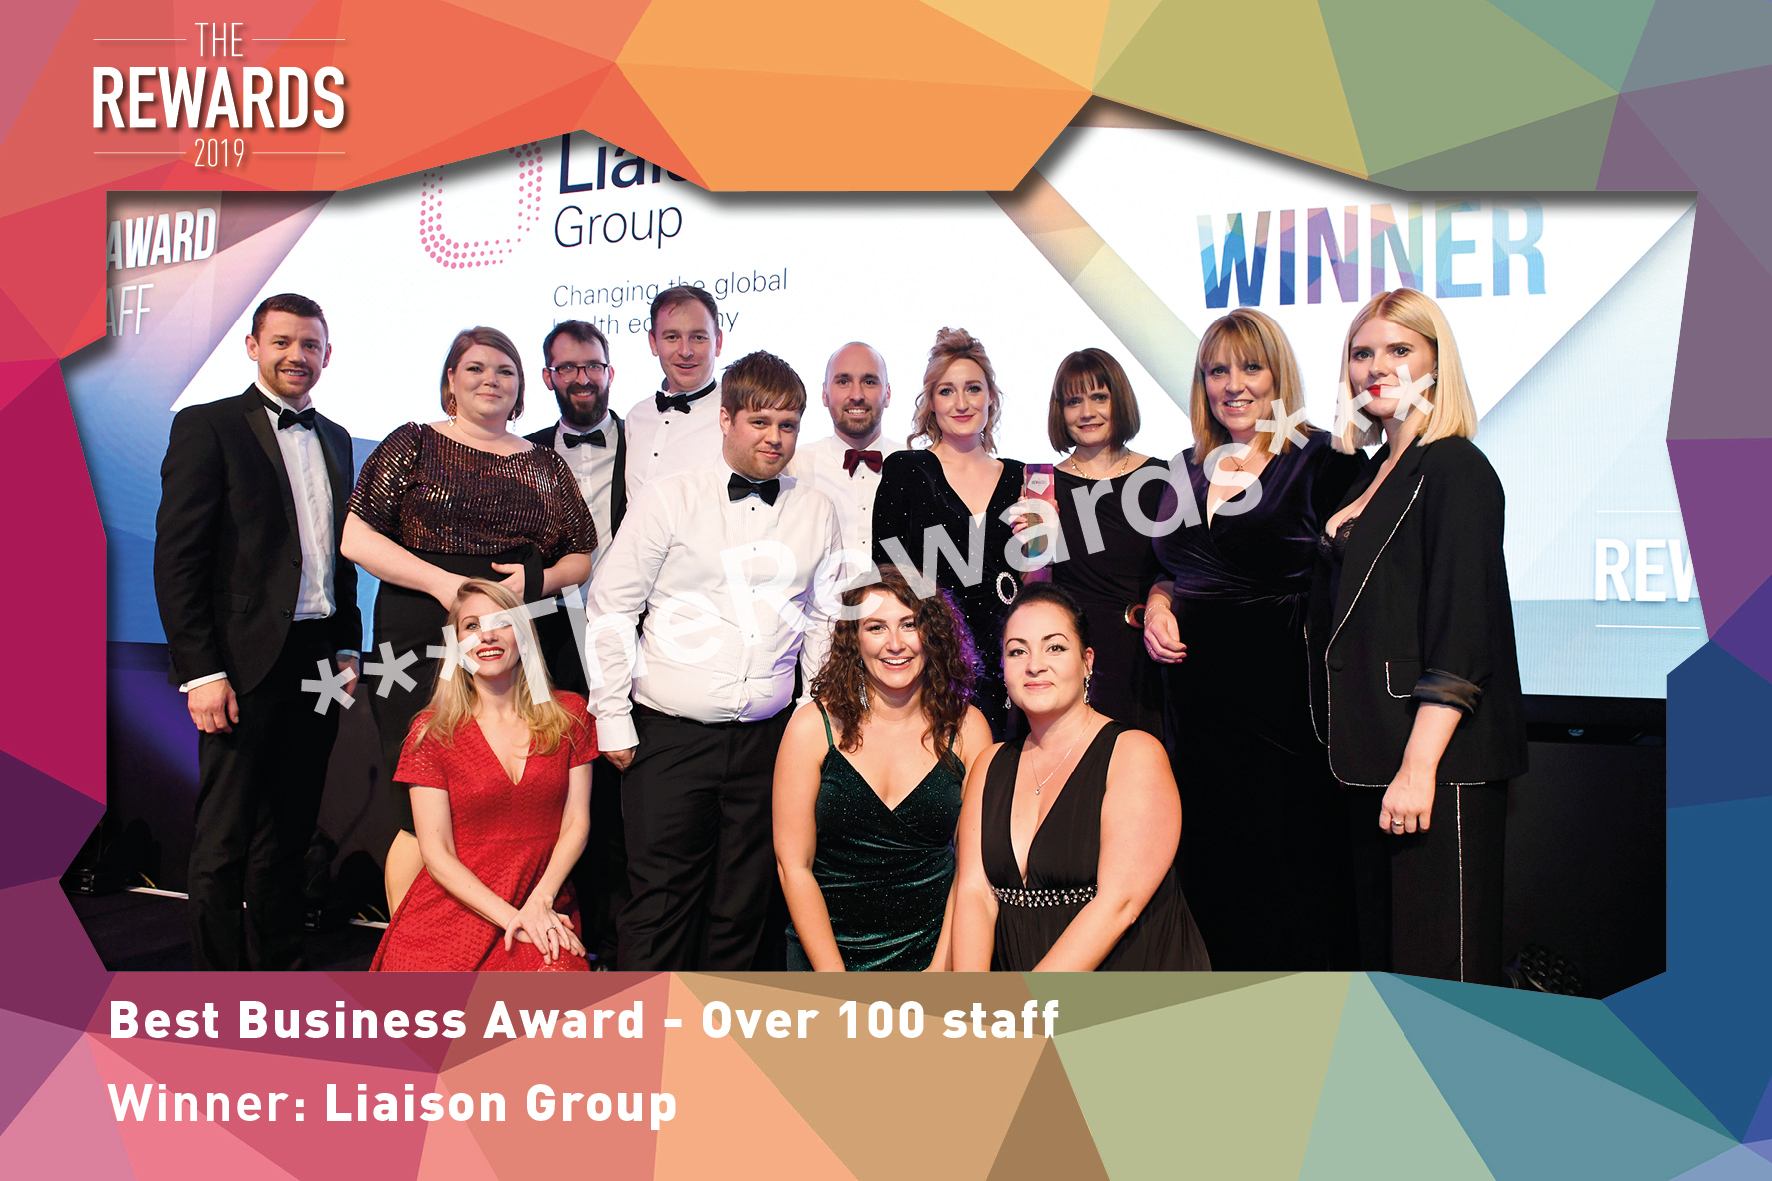 Best Business Award - Over 100 staff